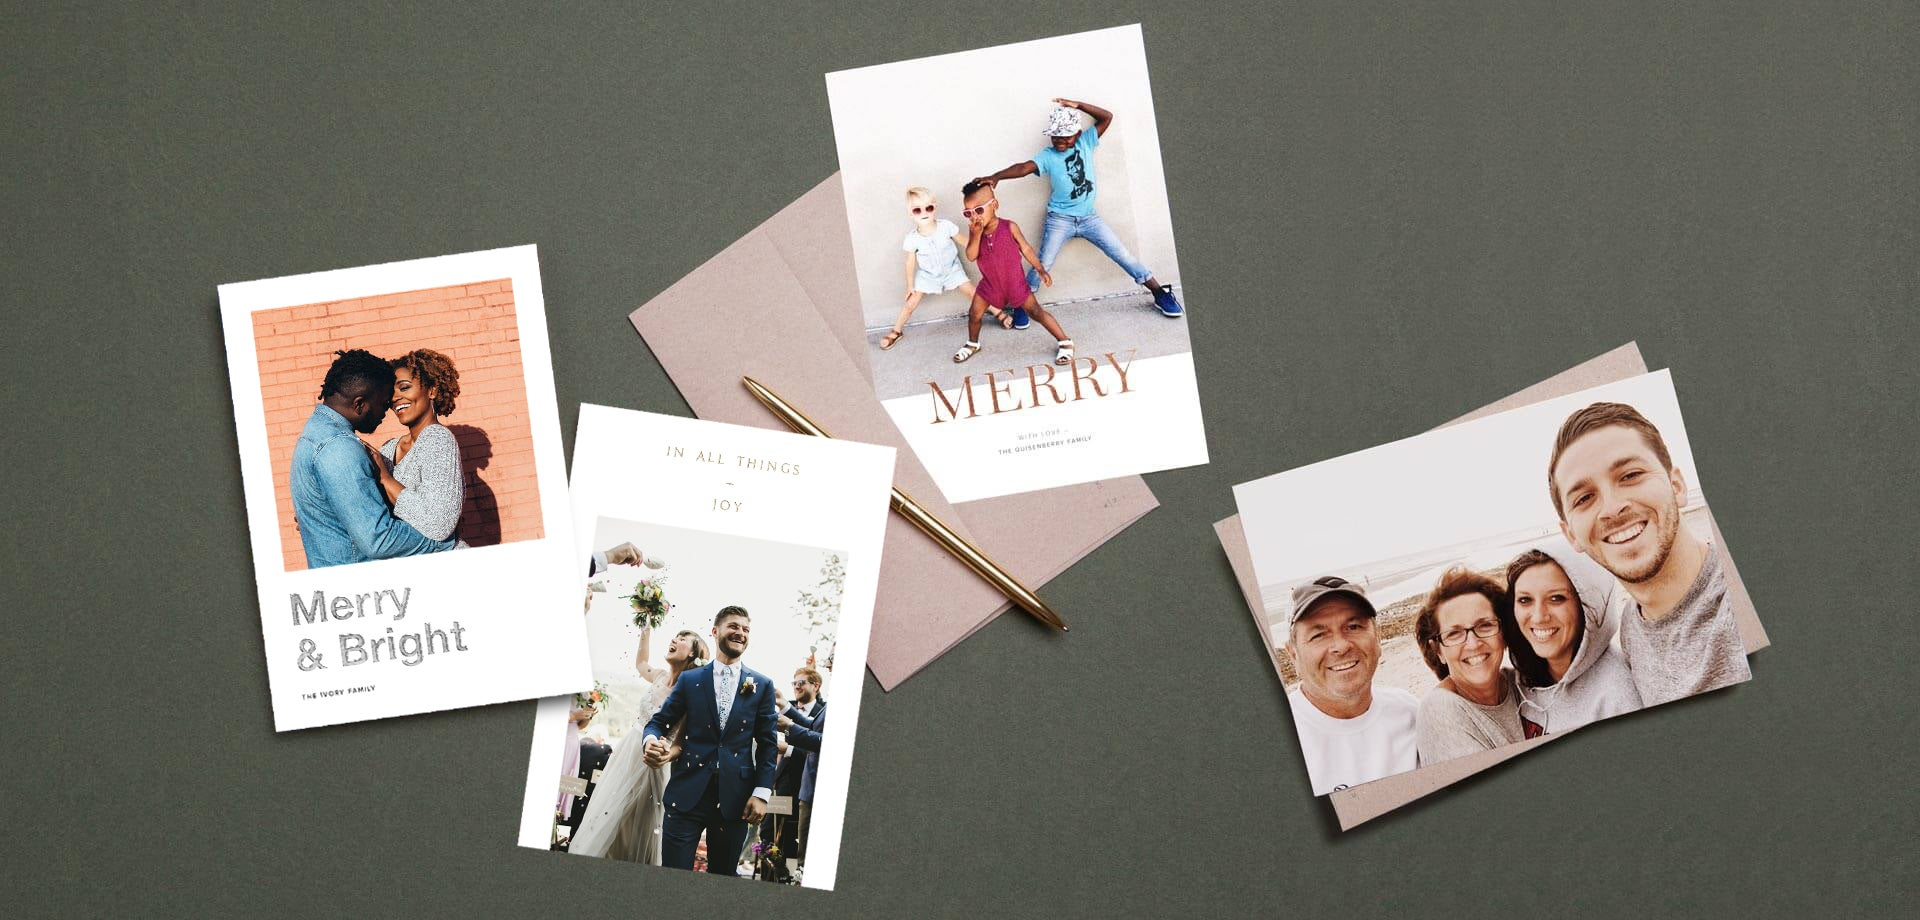 holiday cards spread out on table with gold pen